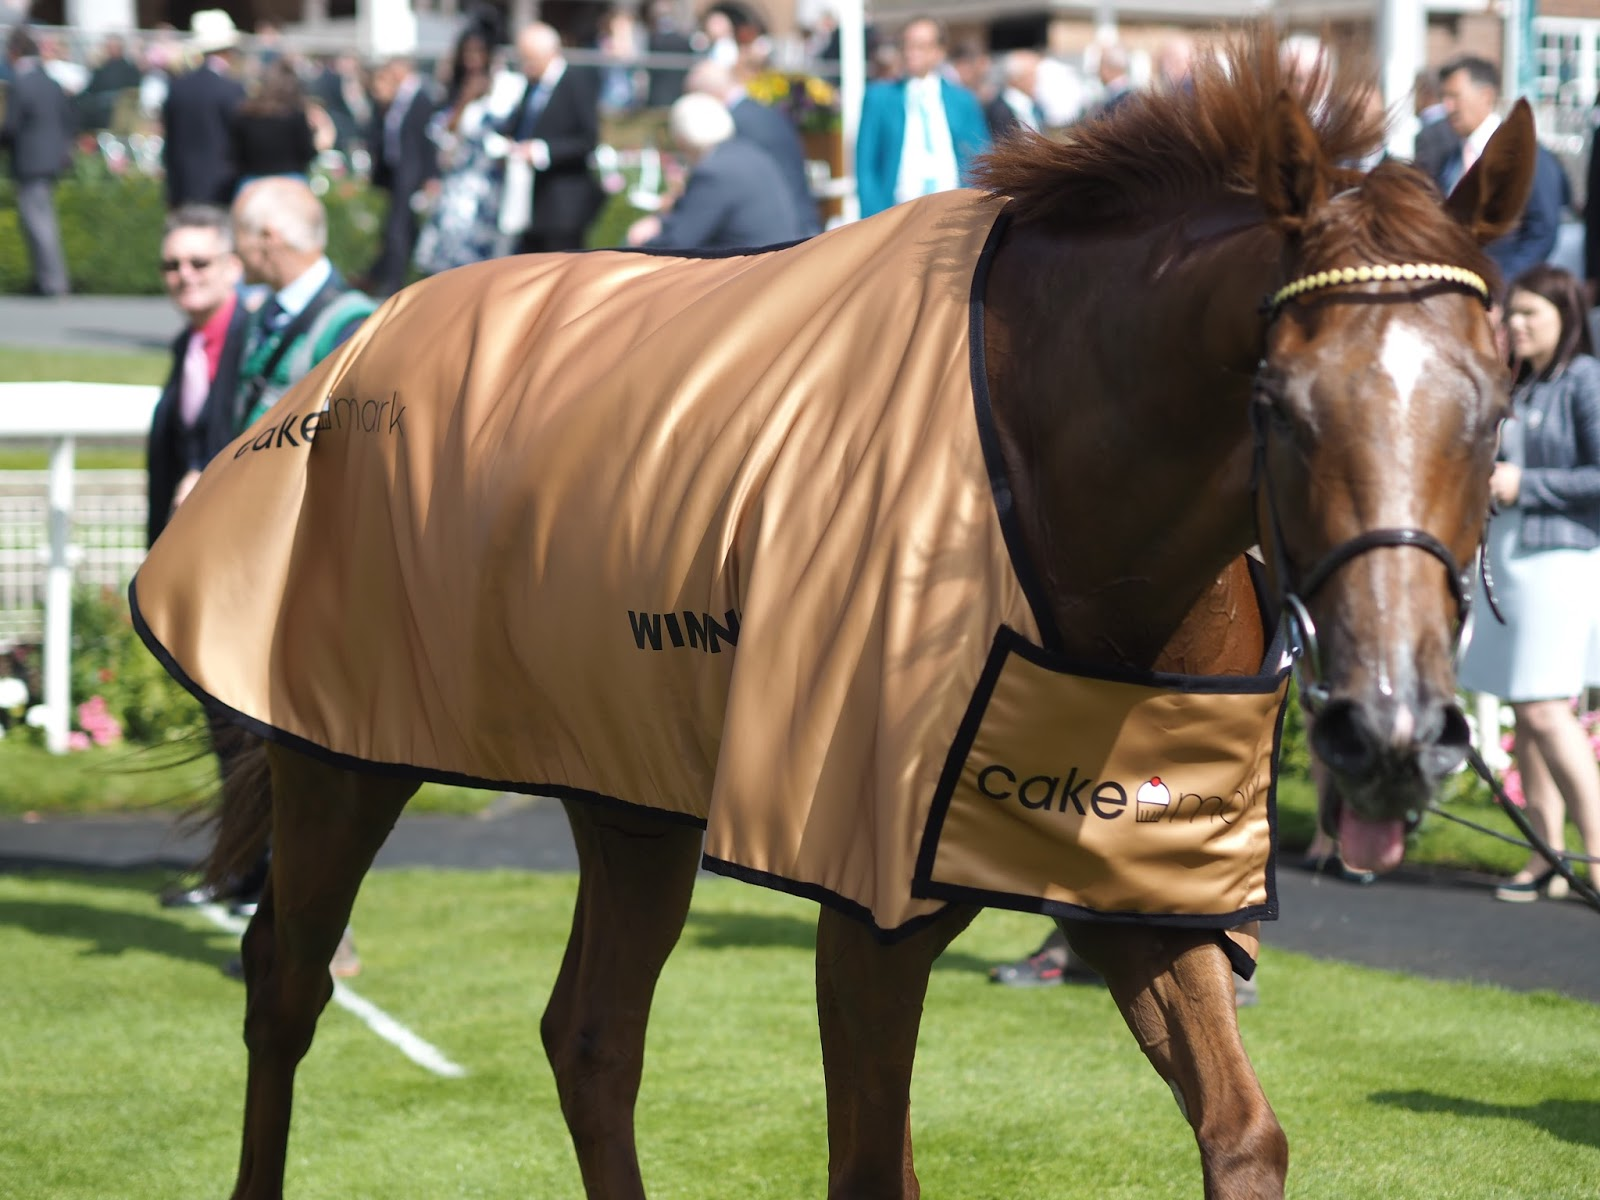 York races, Novoman in winners blanket